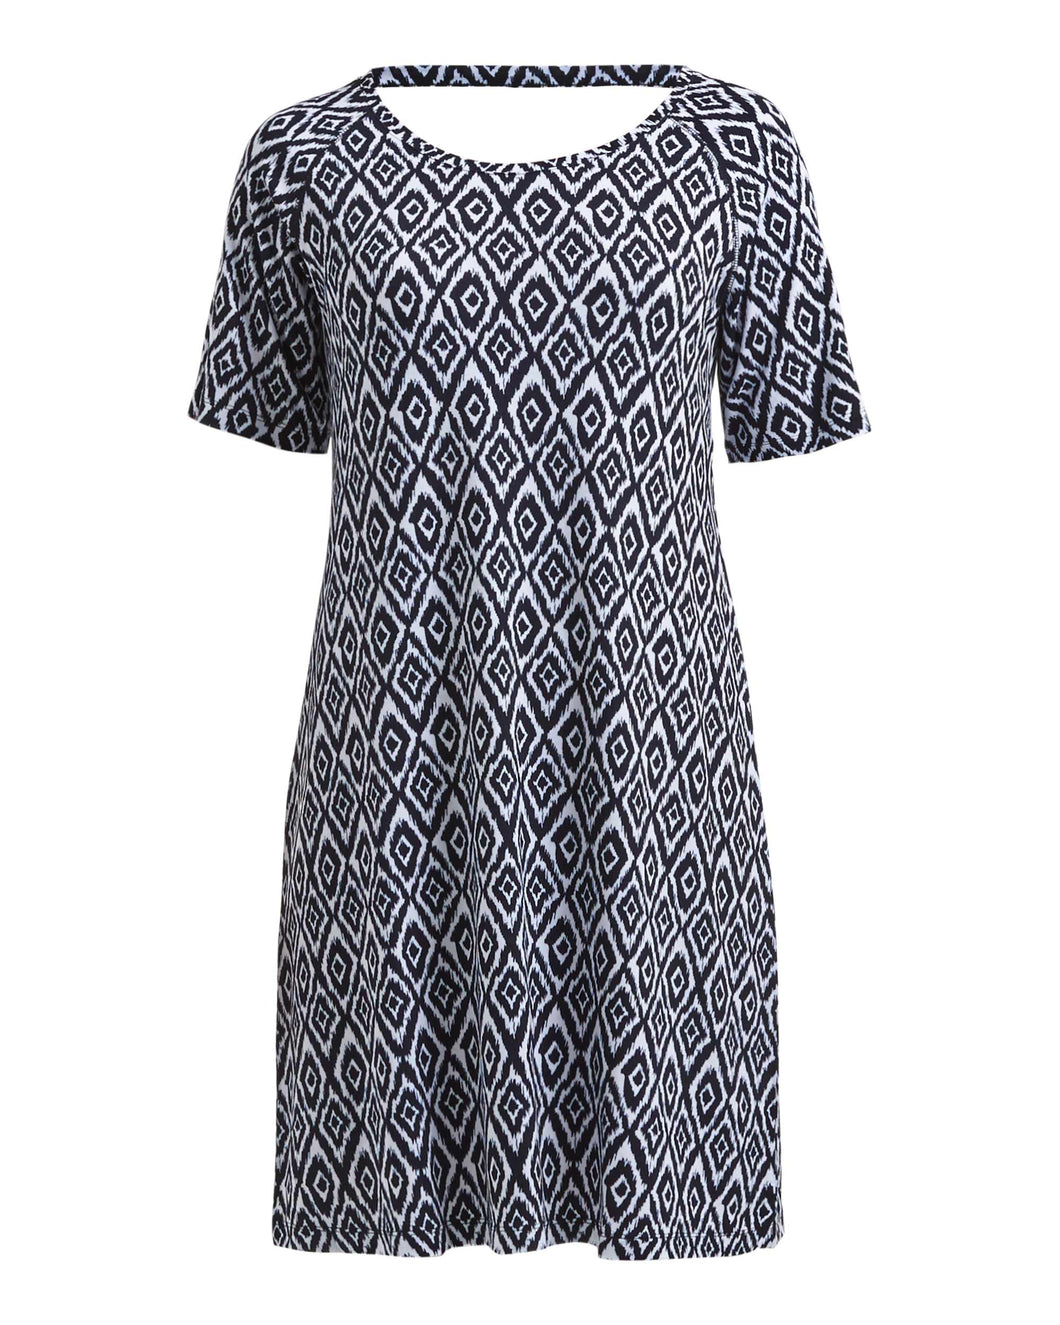 Holebrook Sweden Bianca Raglan Dress (NEW)